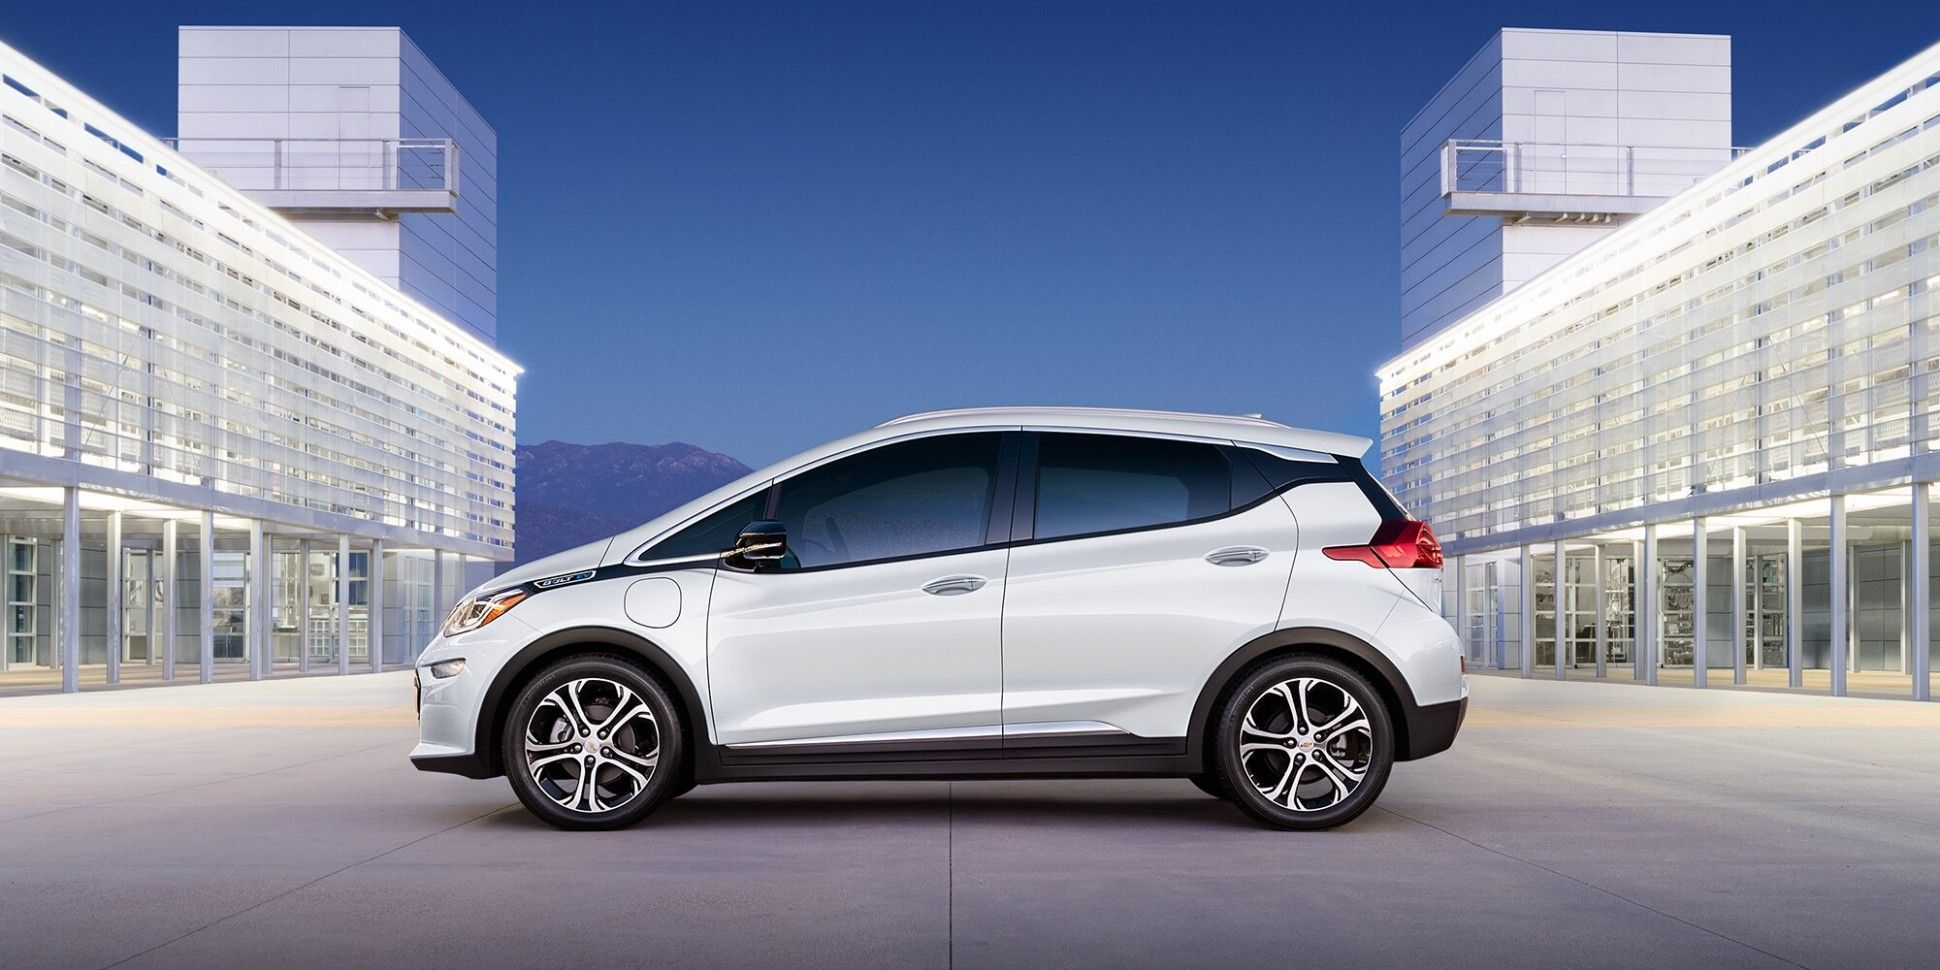 2020 Chevrolet Bolt Ev Range Interior All Electric Cars Car New Car Photo